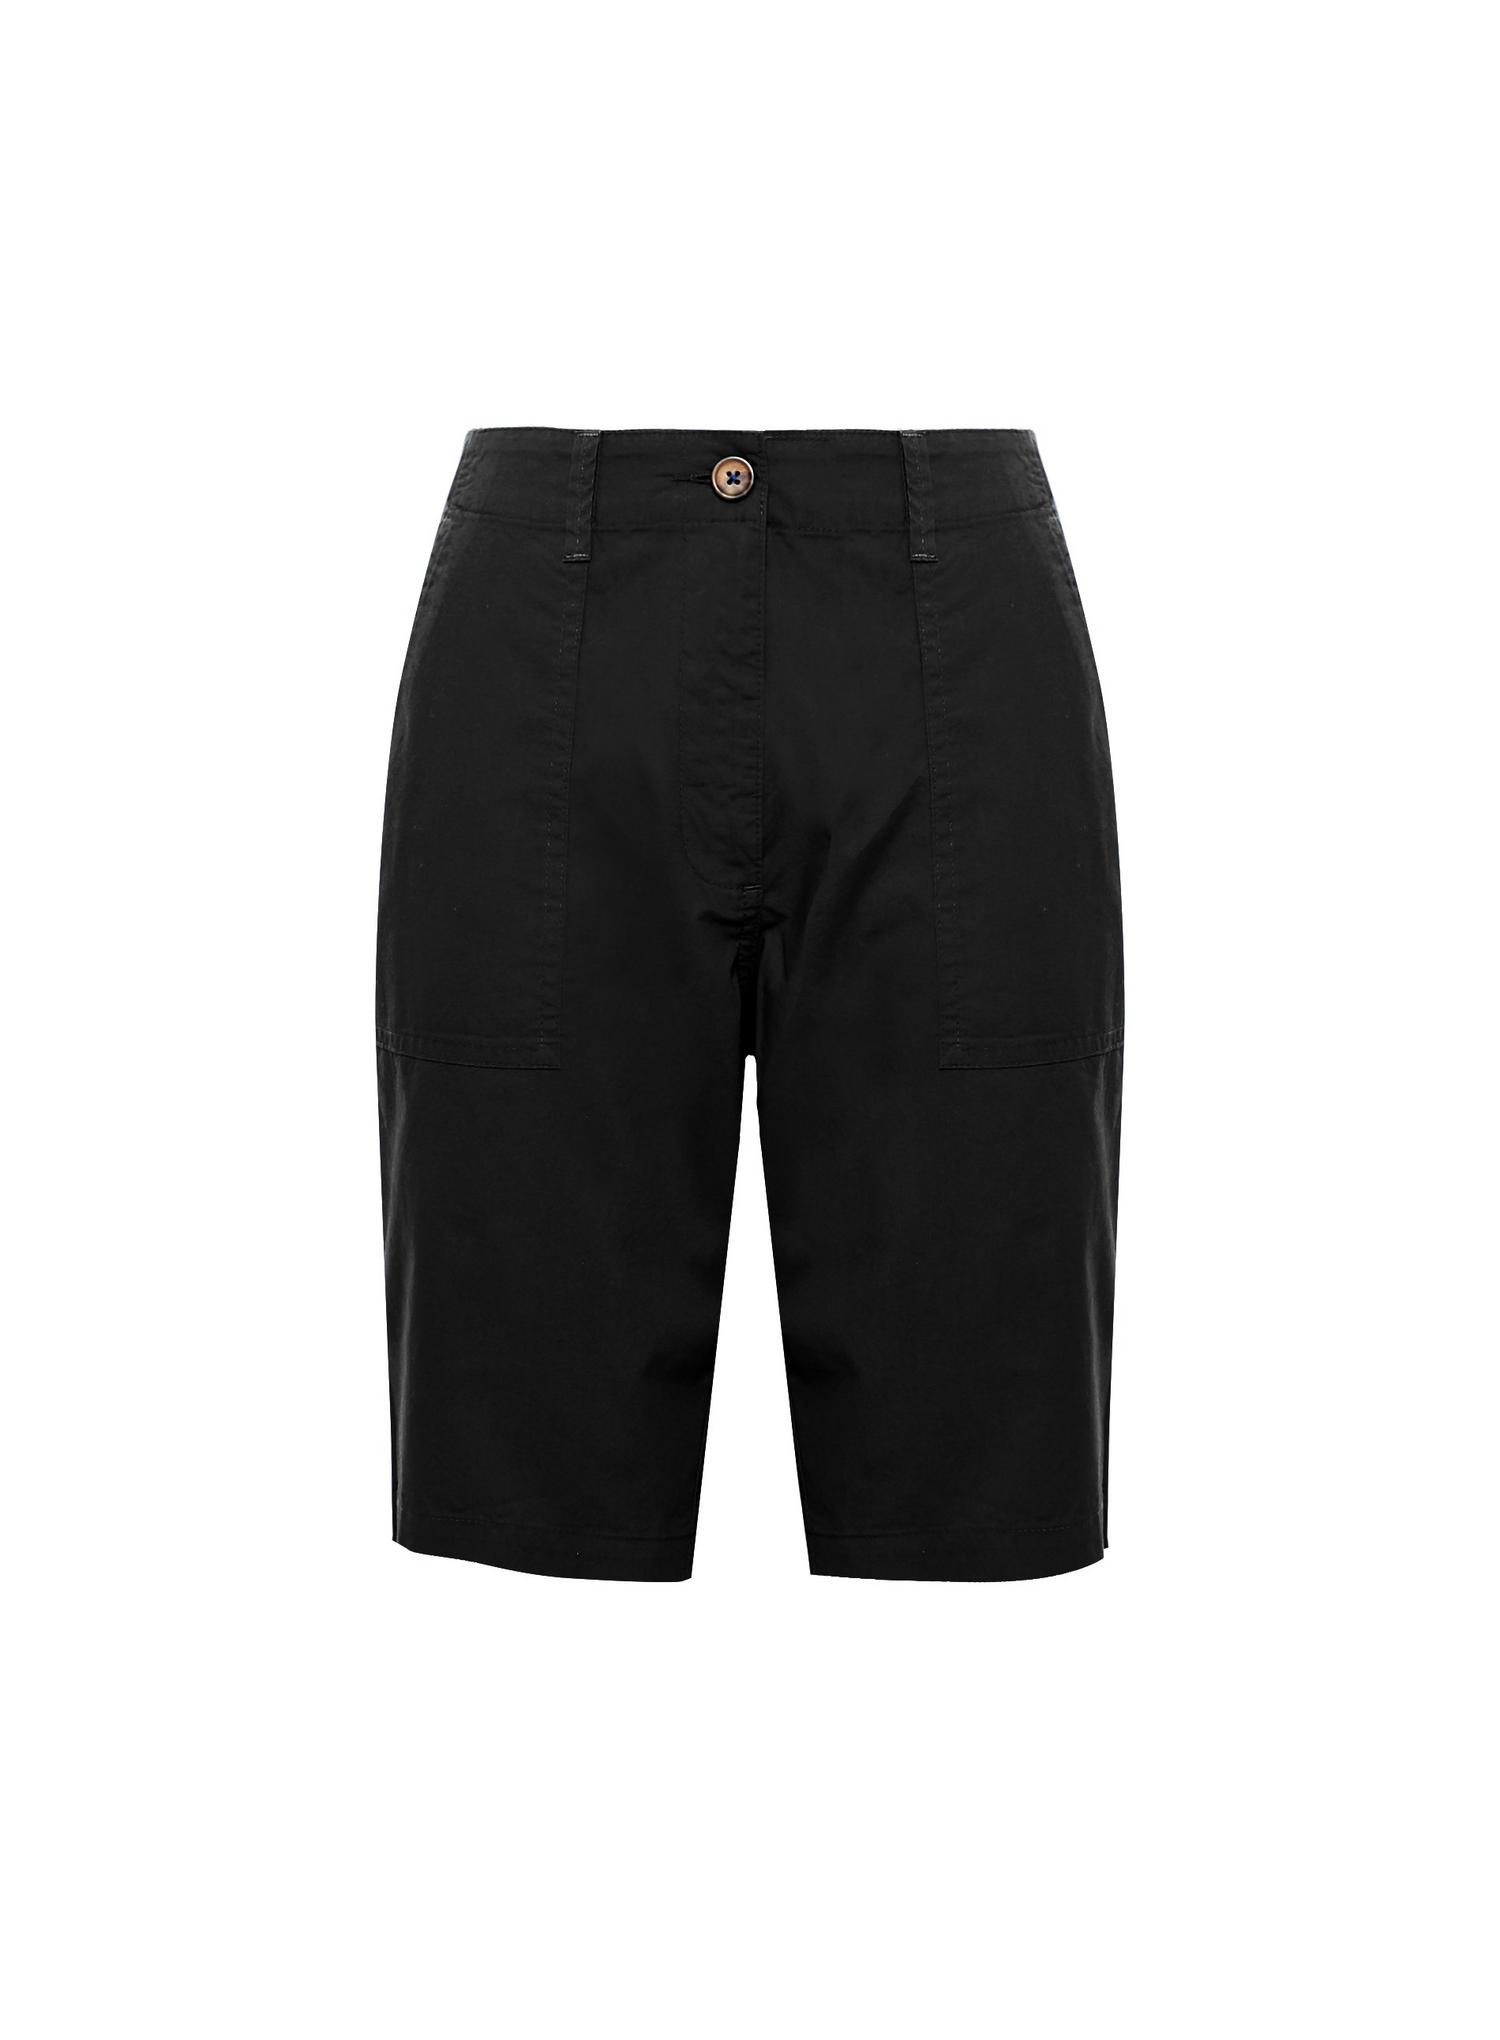 105 Black Poplin Knee Shorts image number 2